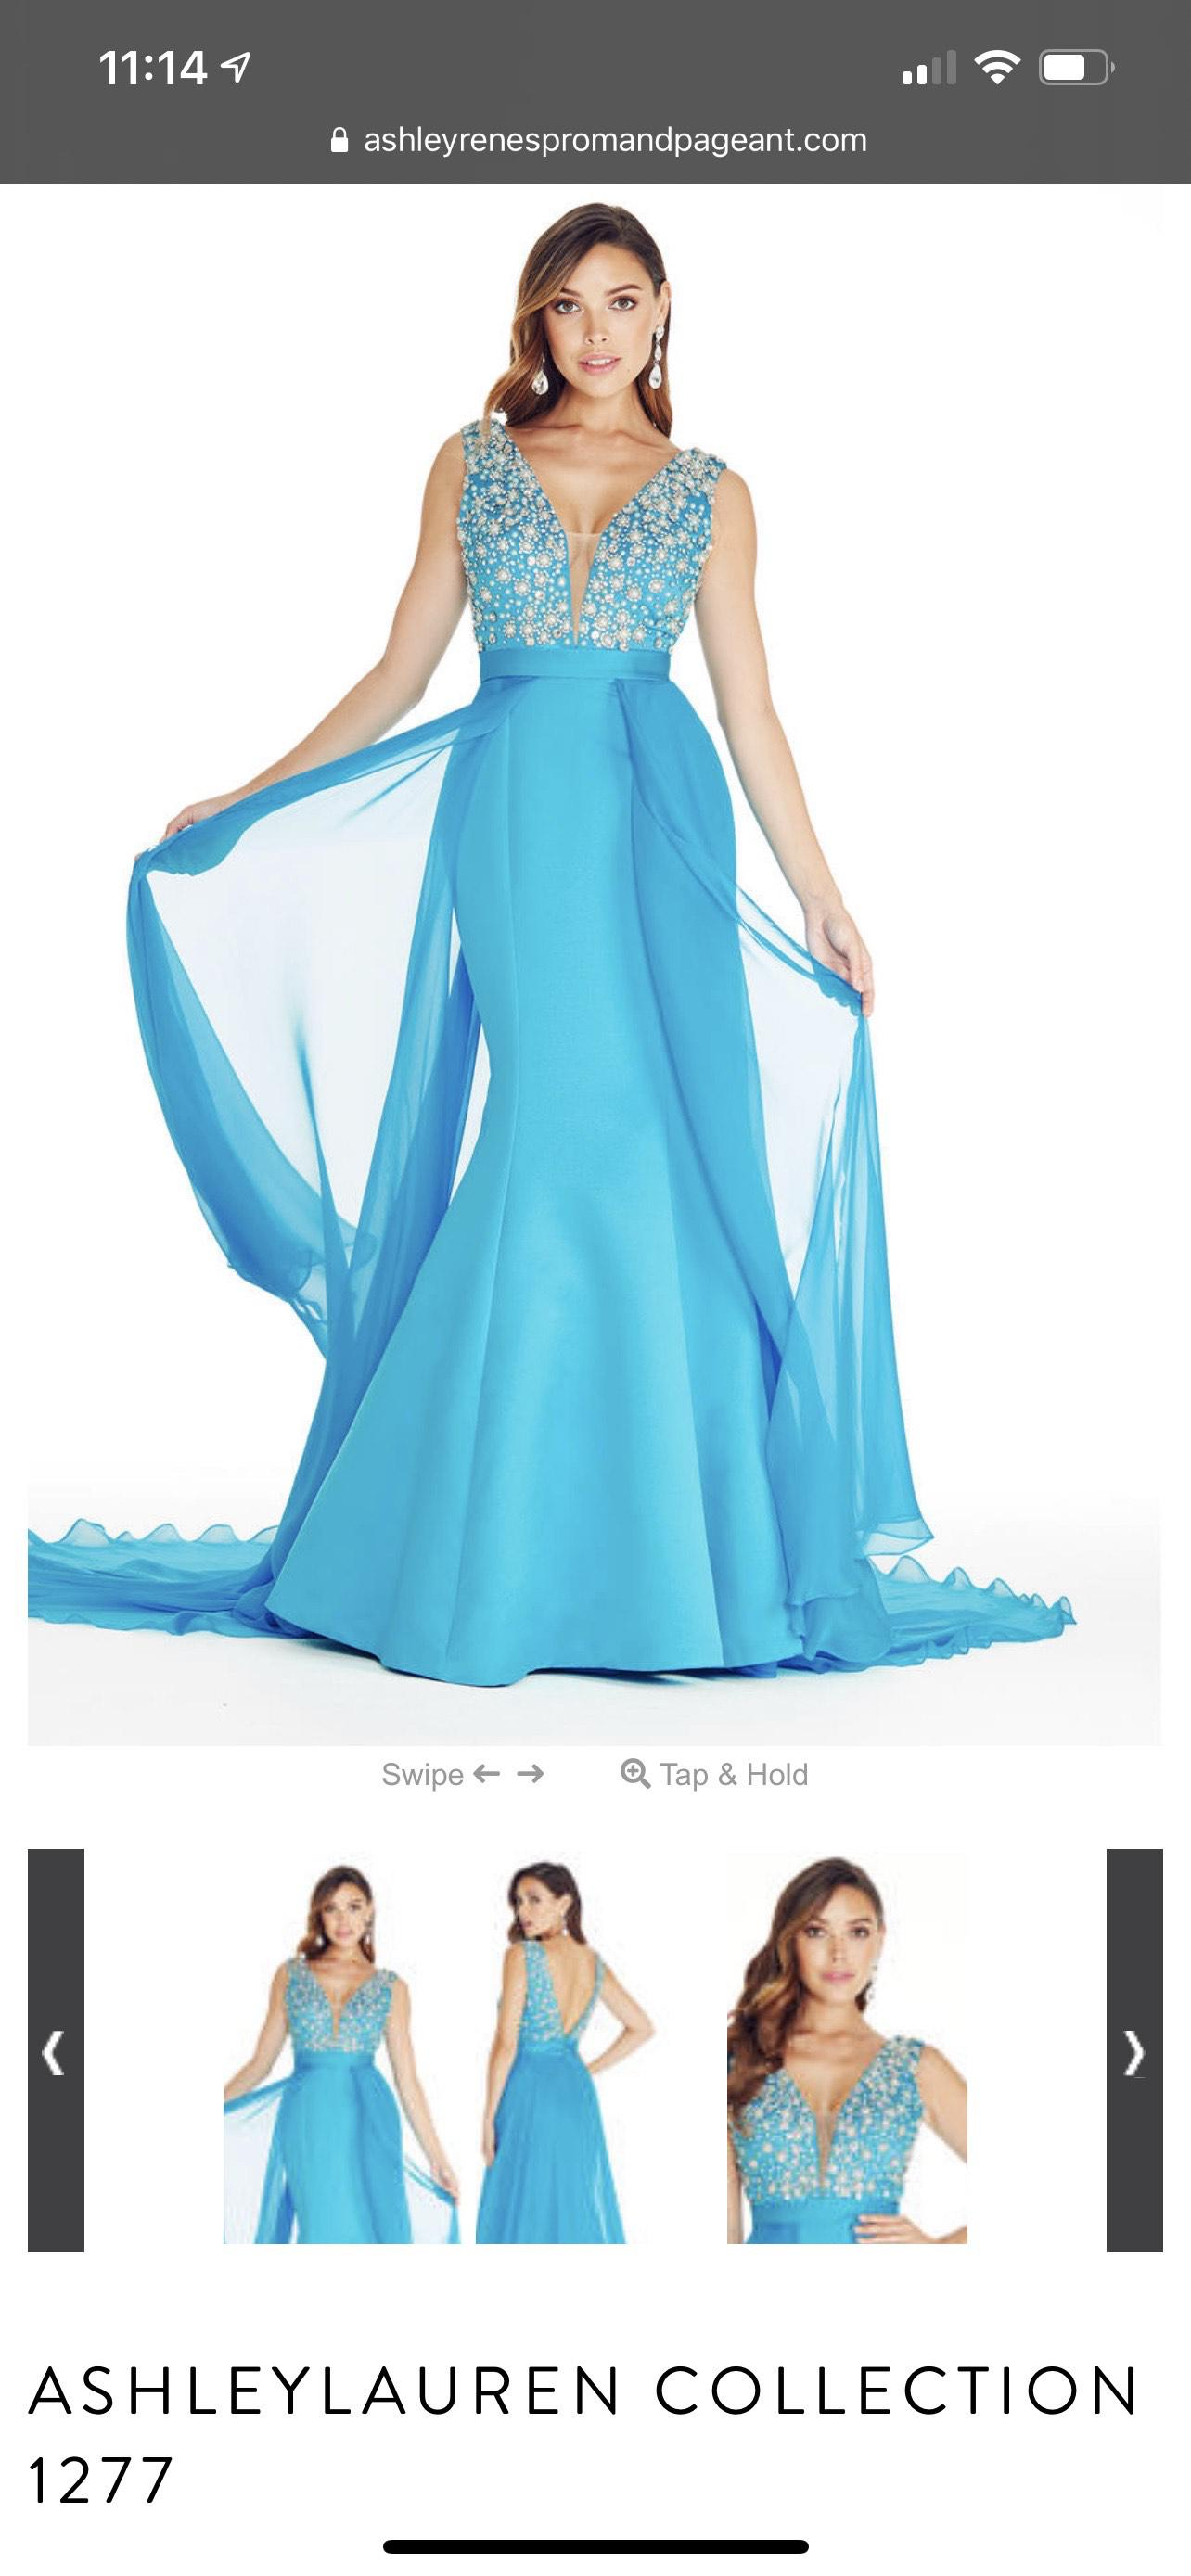 Ashley Lauren style 1277 Blue Size 2 Prom Pageant Cape Mermaid Dress on Queenly